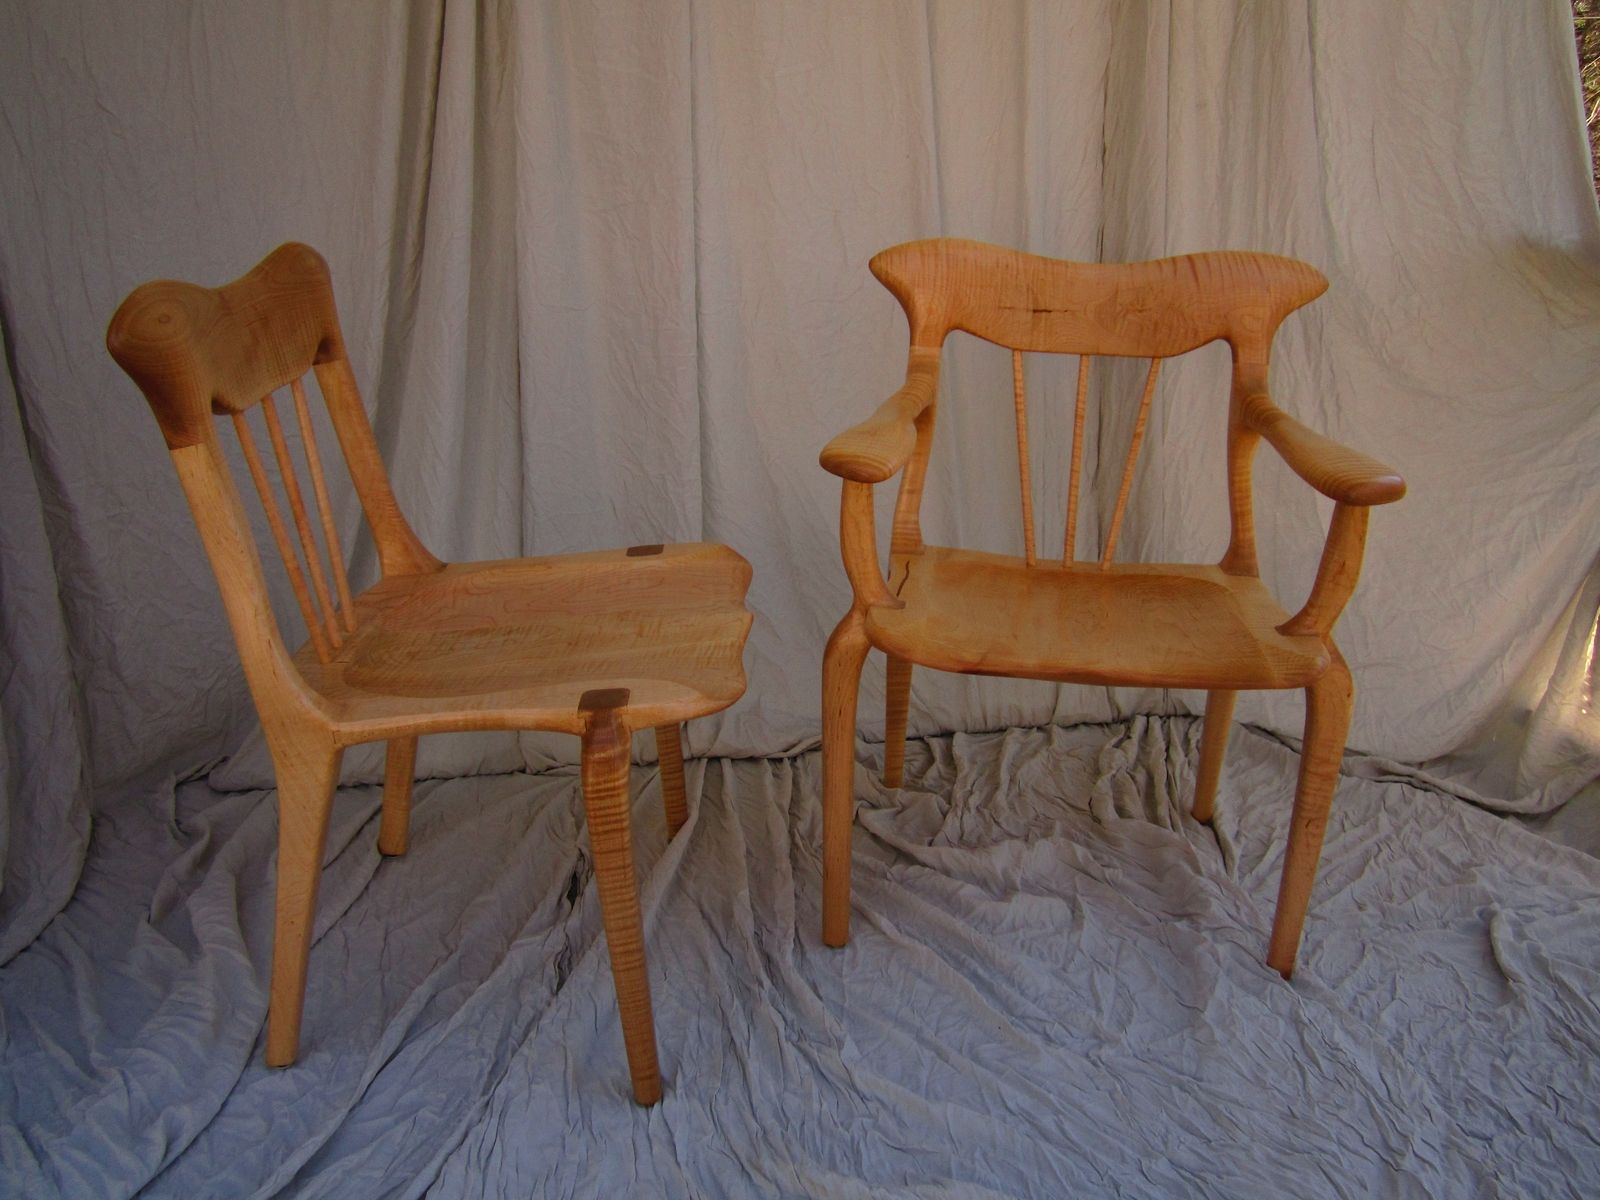 Hand Made Curly Maple Lyre Dining Chair Set by Bearkat Wood